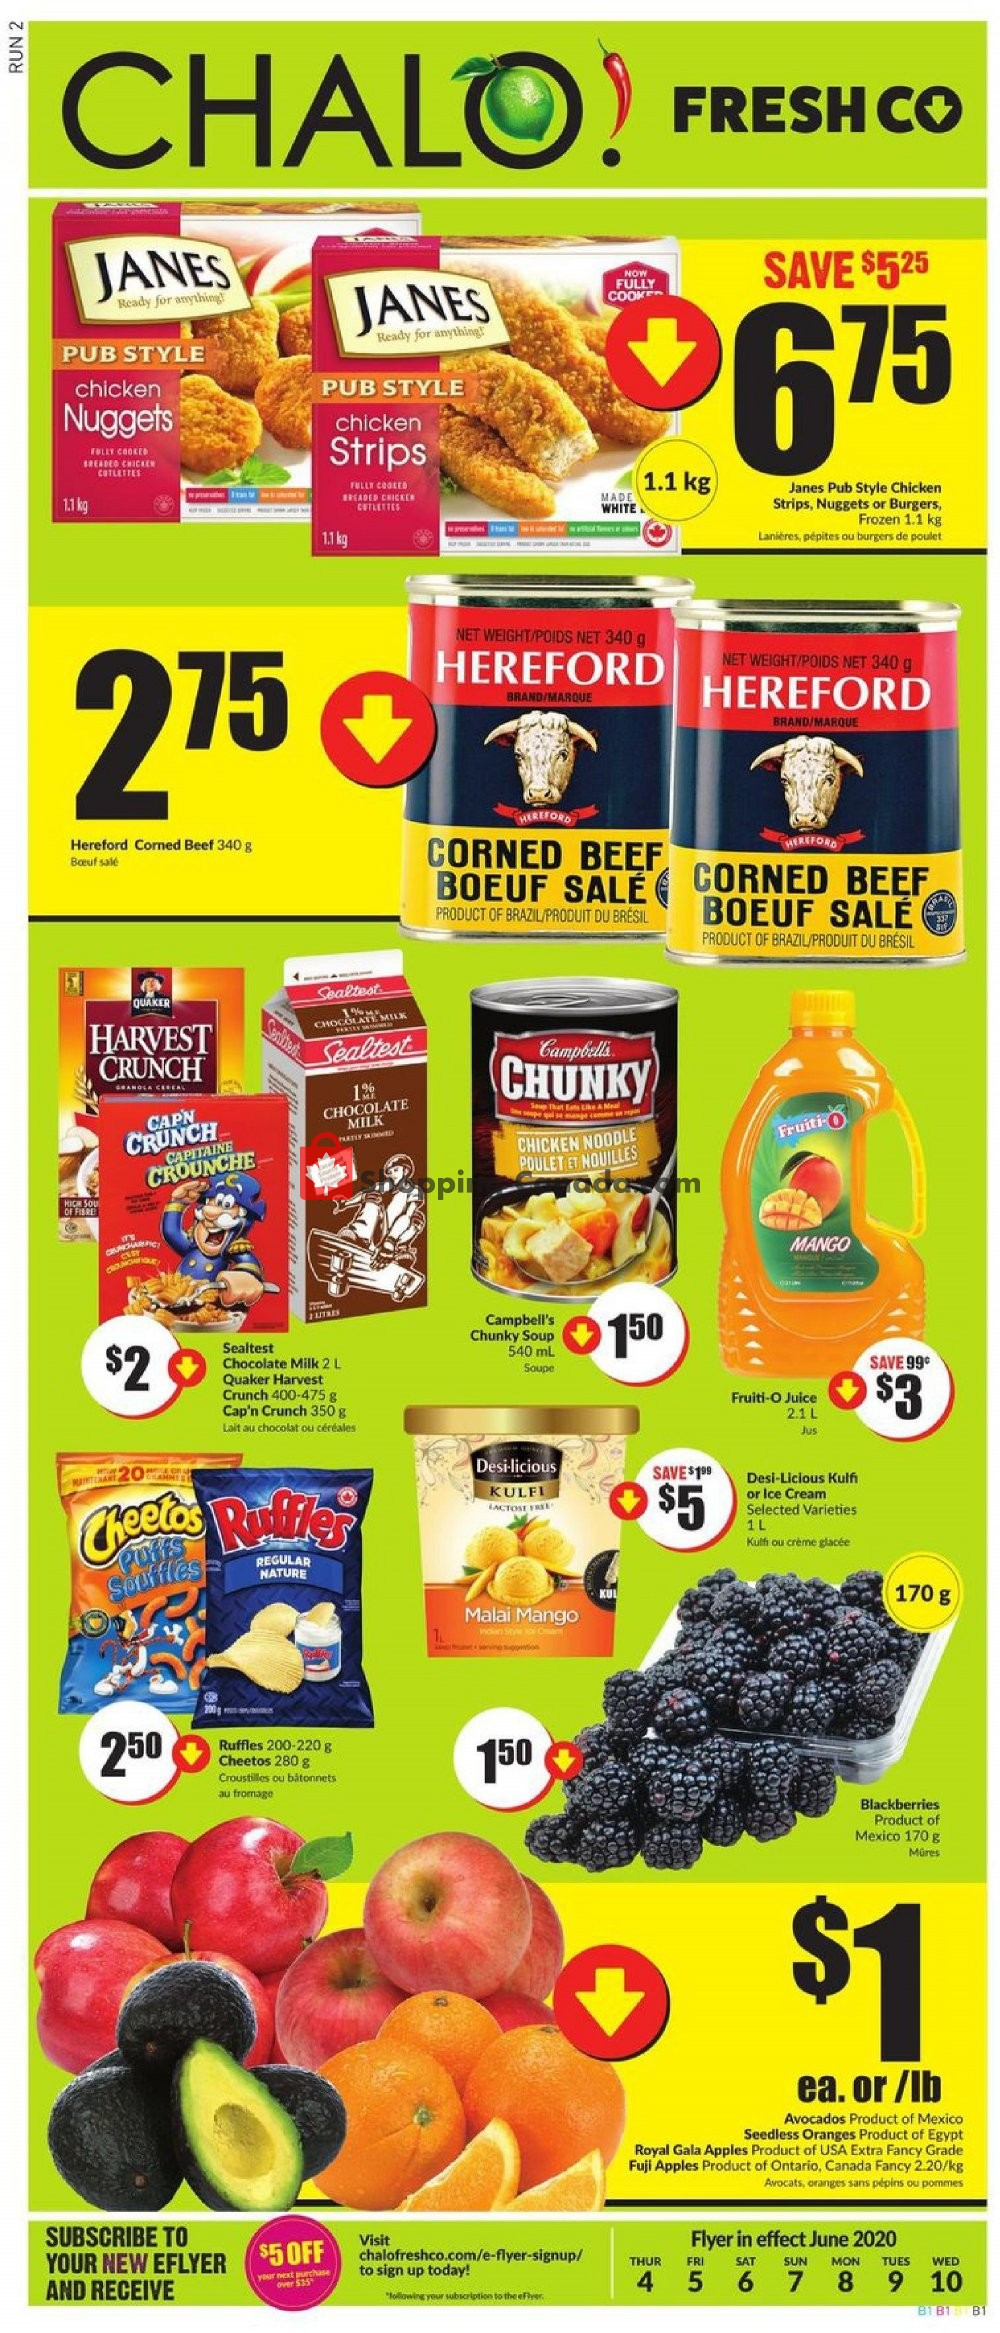 Flyer Chalo FreshCo Canada - from Thursday June 4, 2020 to Wednesday June 10, 2020